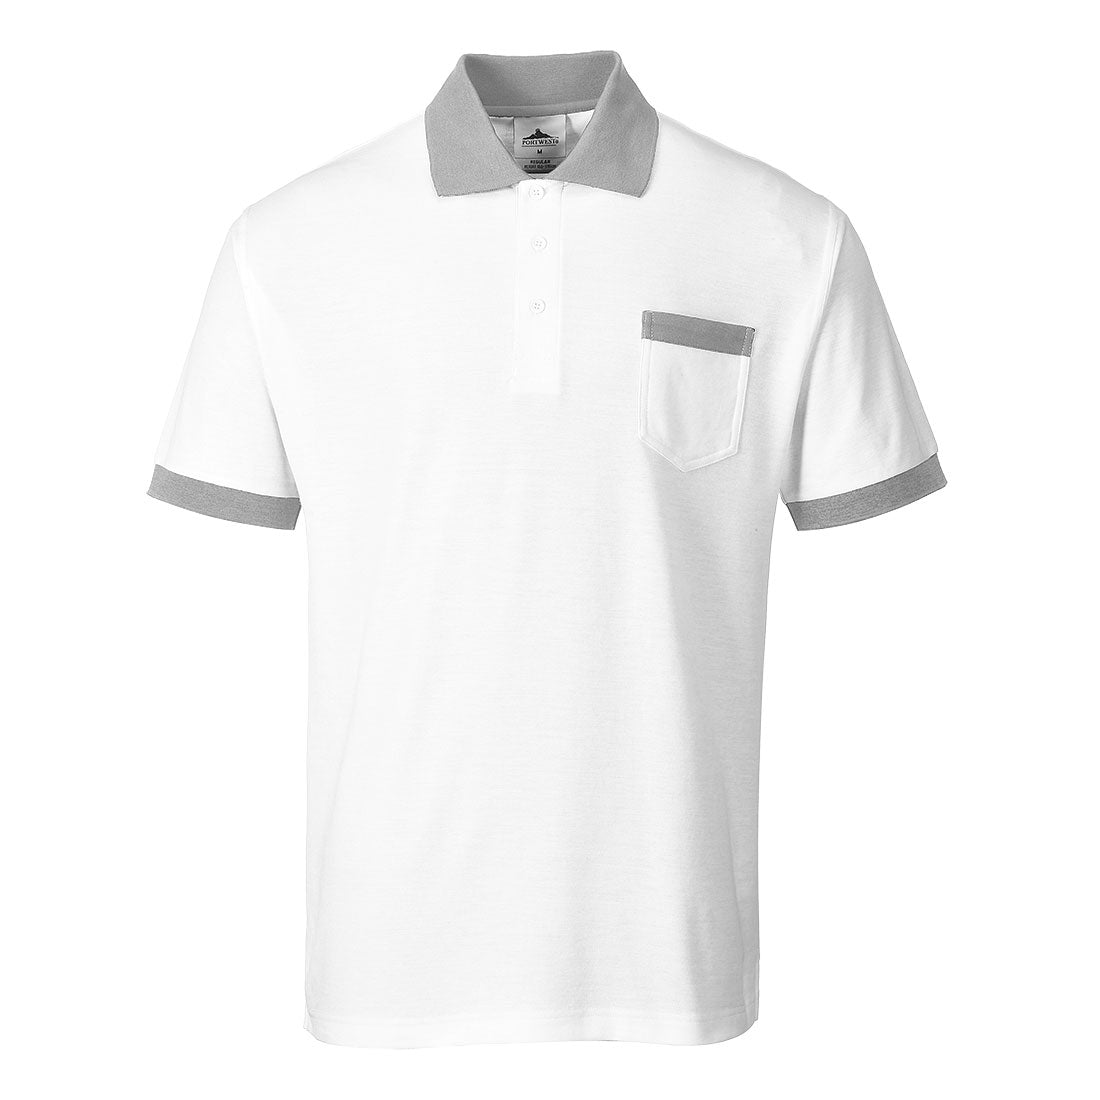 Painters whites Painter Pro Polo. Colour: White/Grey. Sizes: S - 2XL. Prime Mover Port West